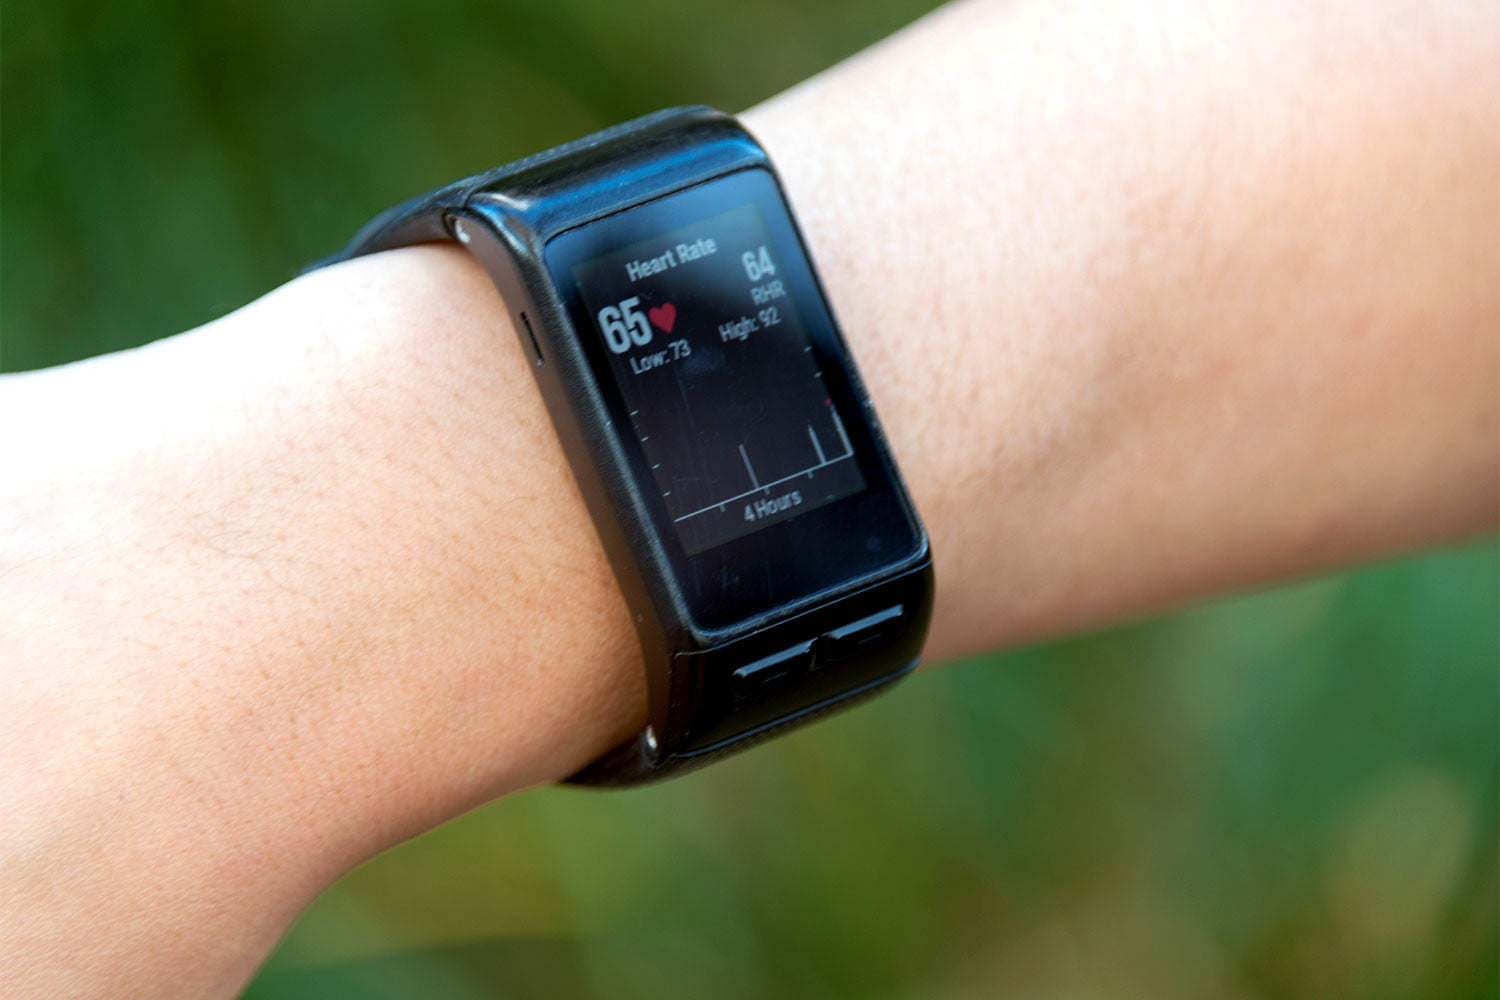 Tips for selecting the heart rate monitoring watches